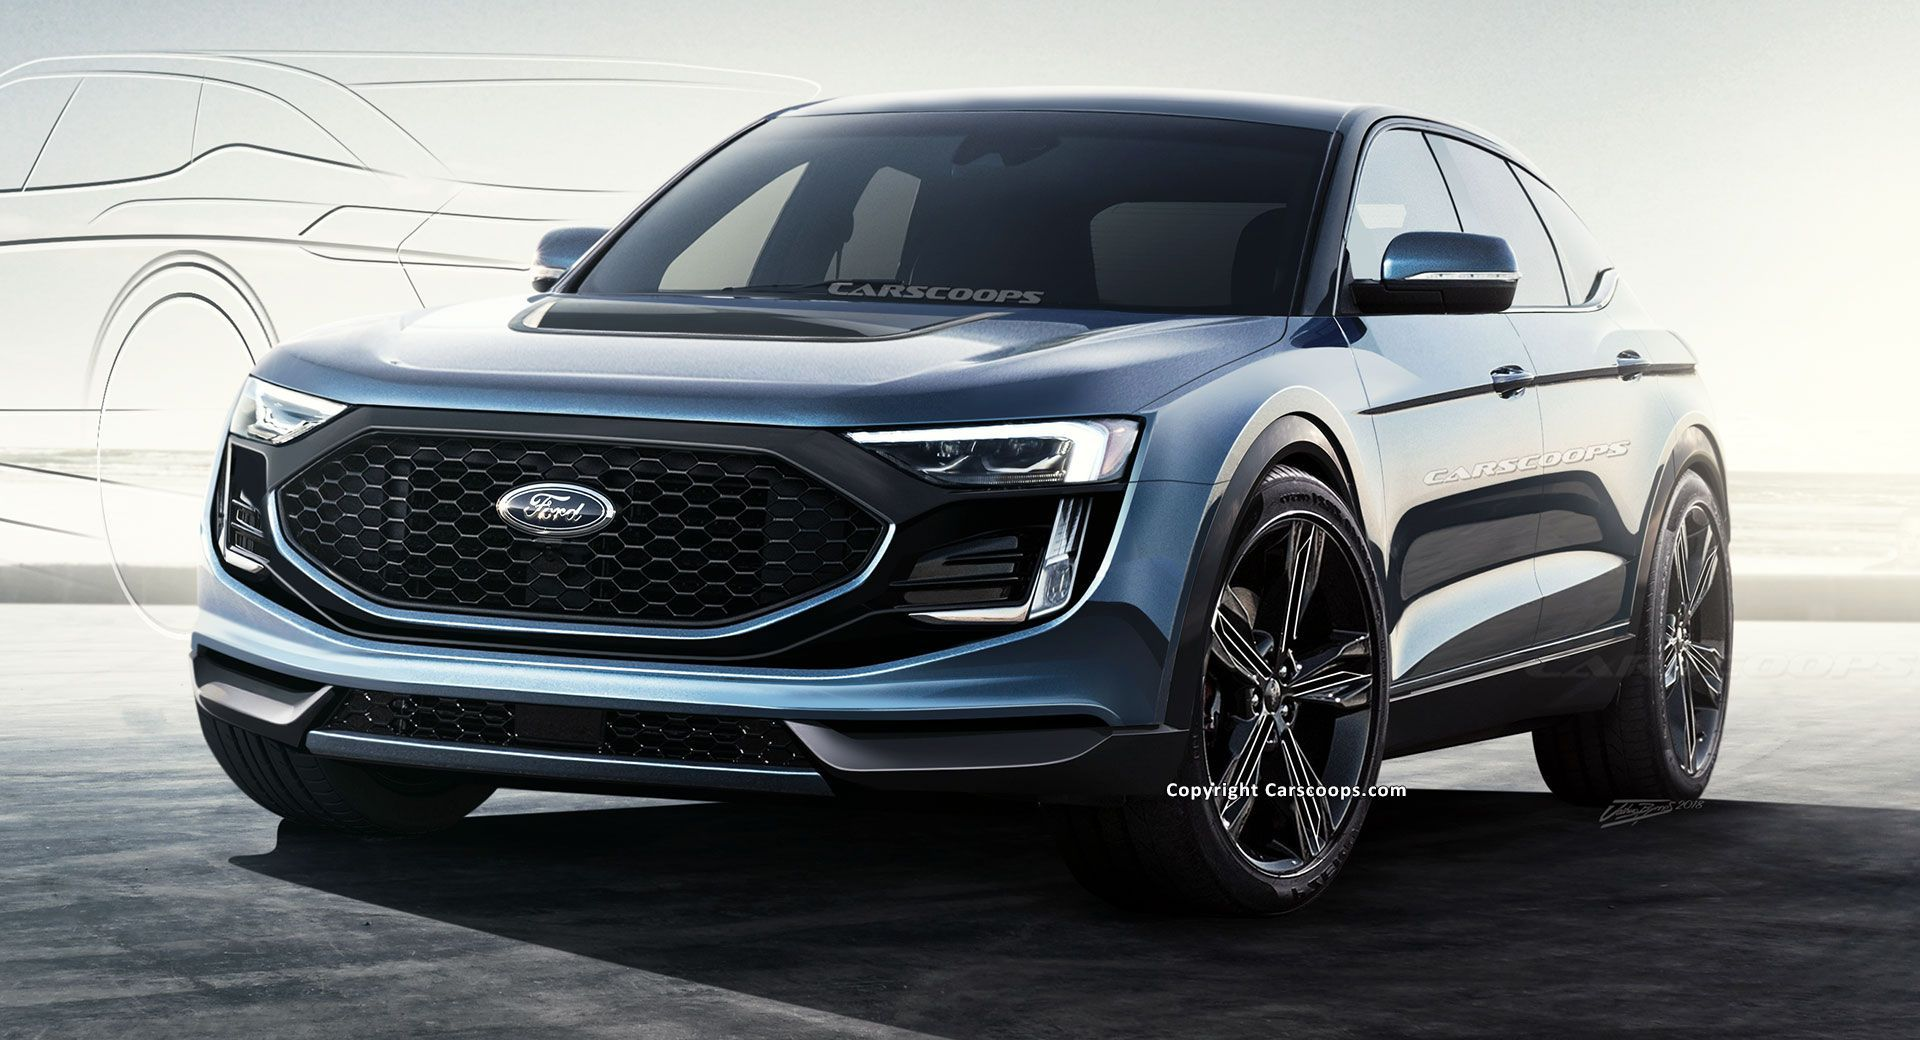 2020 Ford Mach 1 Electric Suv News Rumors And What It Could Look Like Carscoops Ford Electric Suv Mach 1